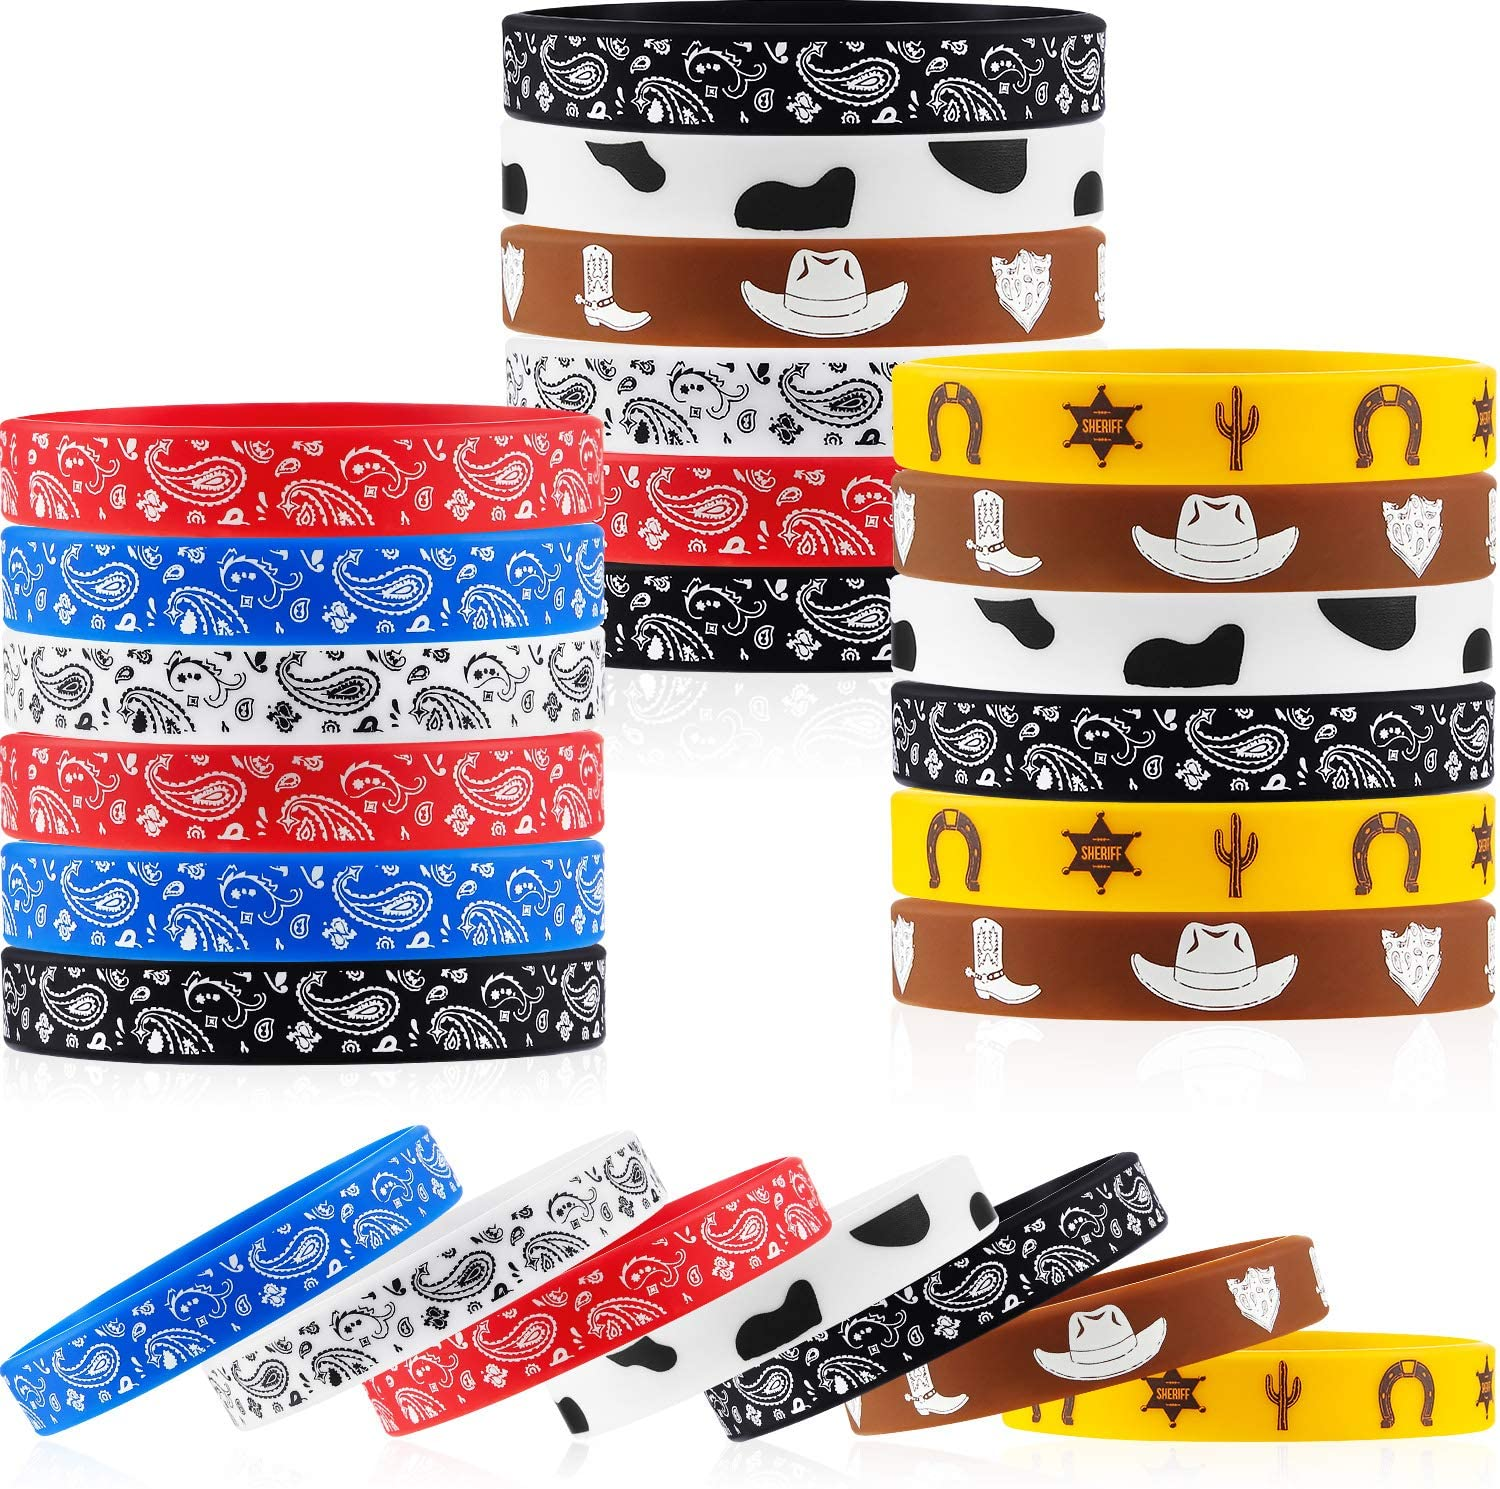 35 Pieces Western Party Bracelets Cowboy Rubber Bracelets Silicone Stretch Wristbands for Western Themed Parties Boys Girls Birthday Parties